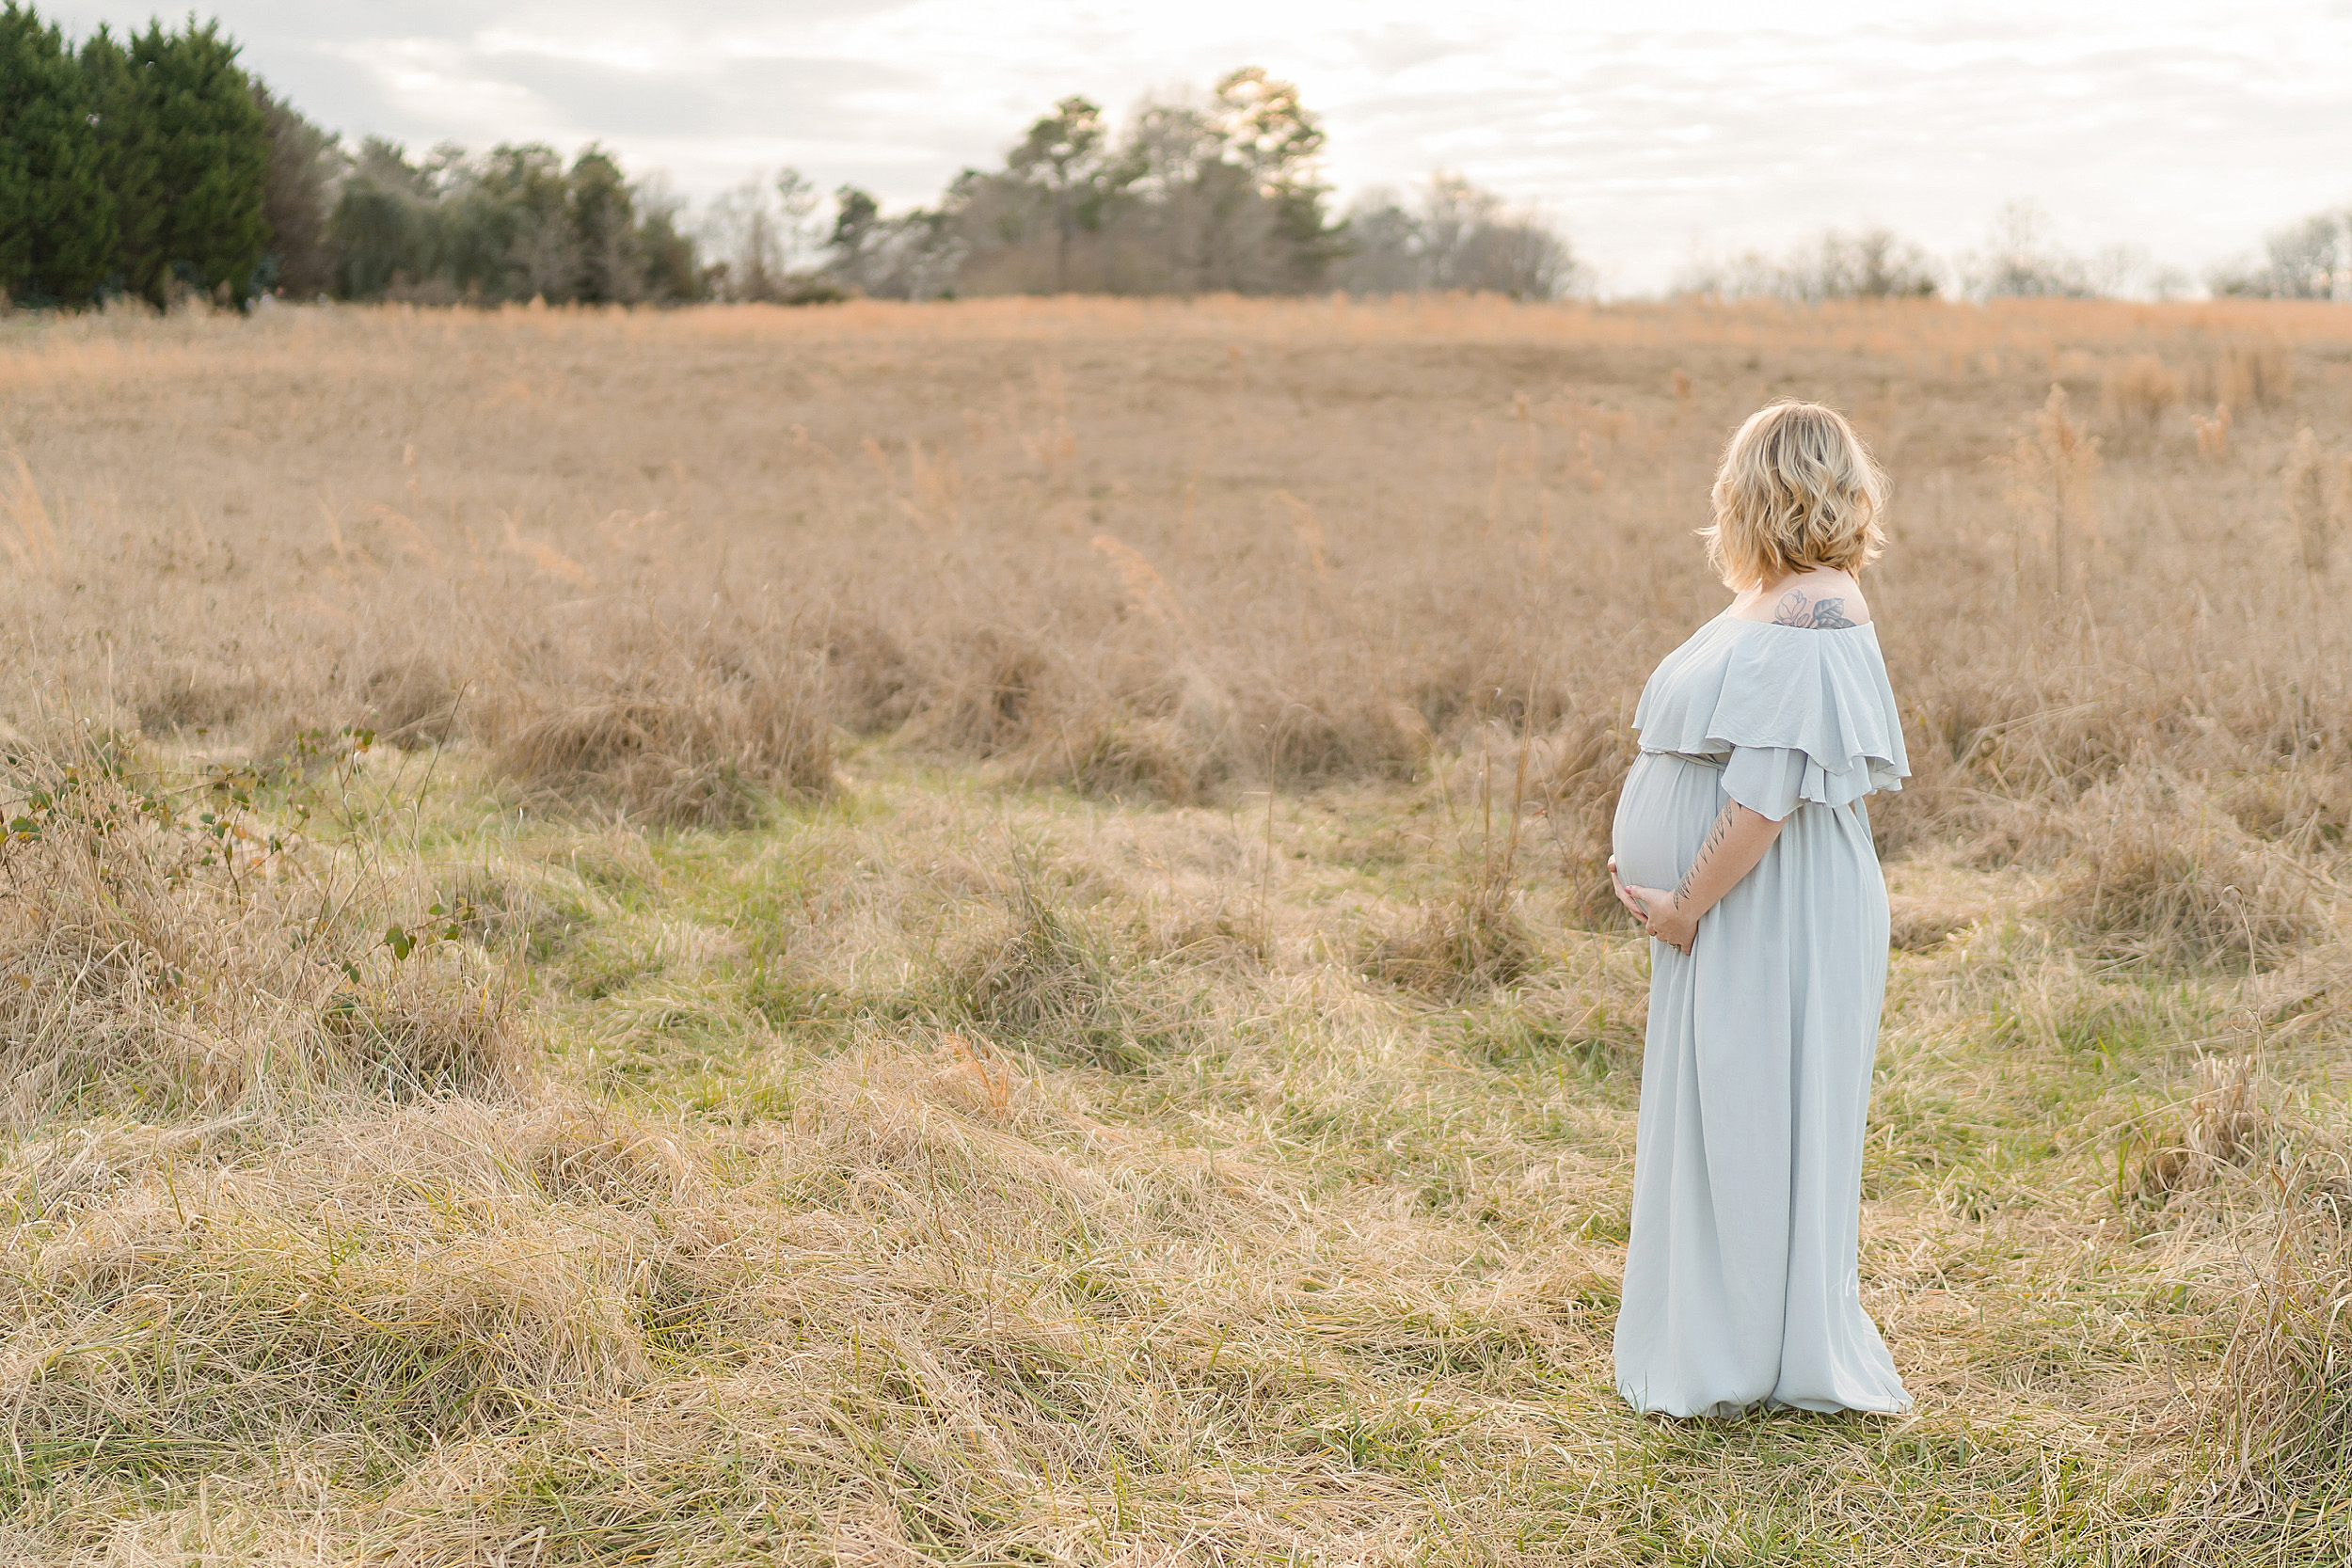 atlanta-sandy-springs-buckhead-virginia-highlands-west-end-decatur-lily-sophia-photography-sunset-field-maternity-couples-session-expecting-baby-girl_0943.jpg